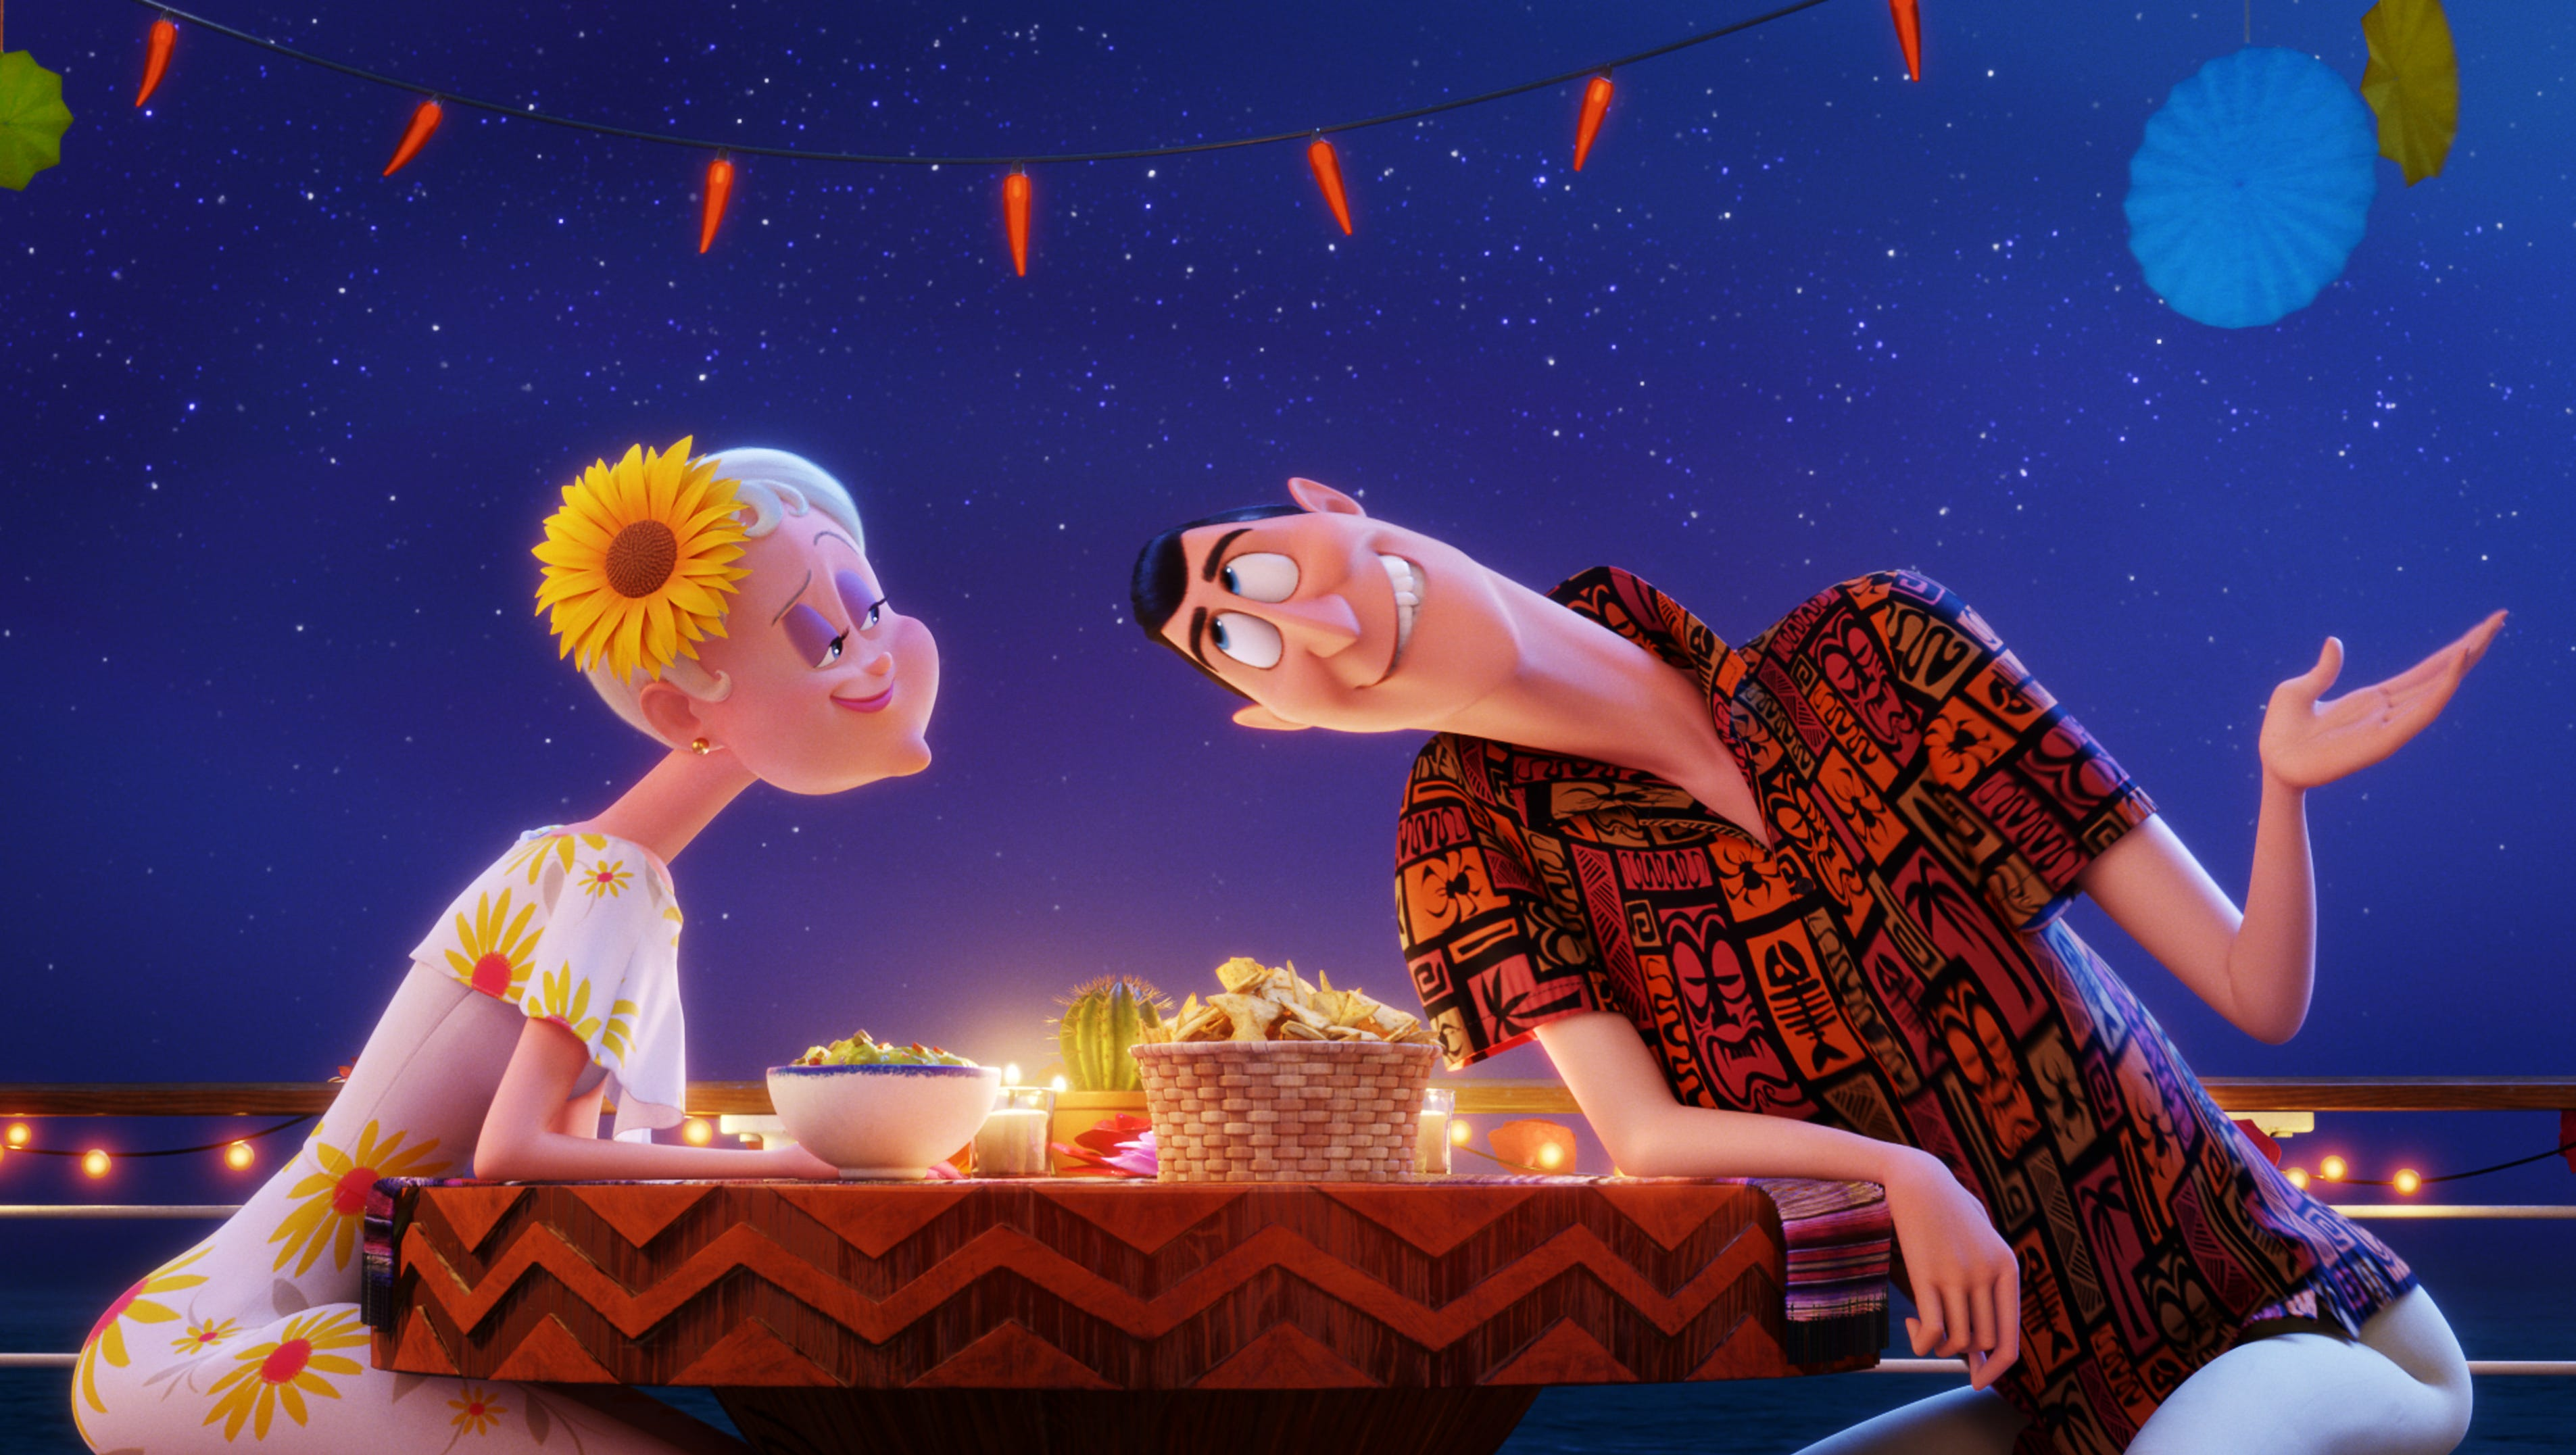 Hotel Transylvania 3 Vampire Love Abounds In Silly Touching Tale